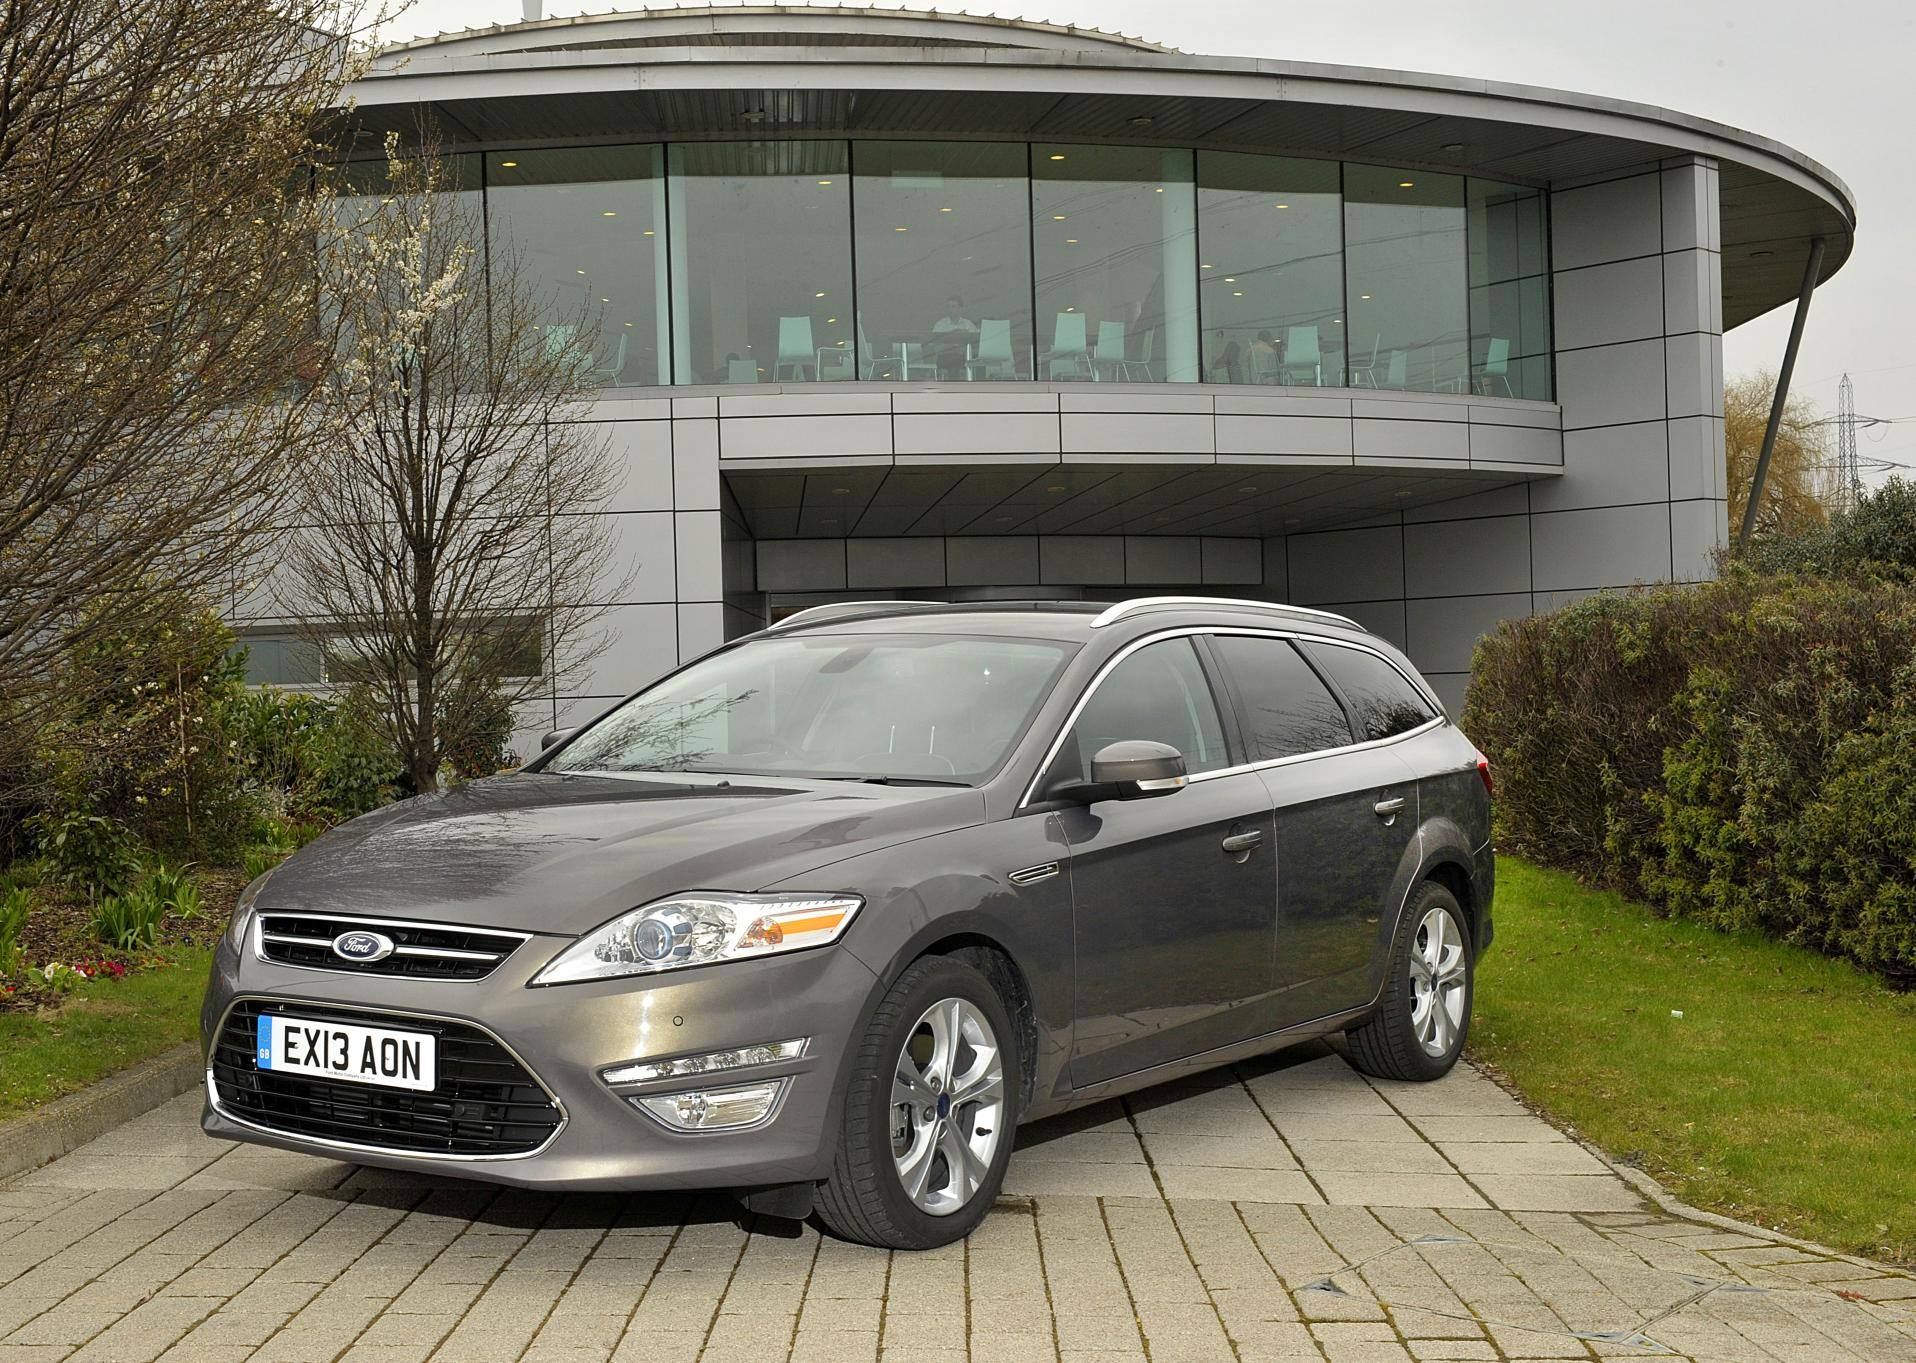 image of a ford mondeo estate car exterior